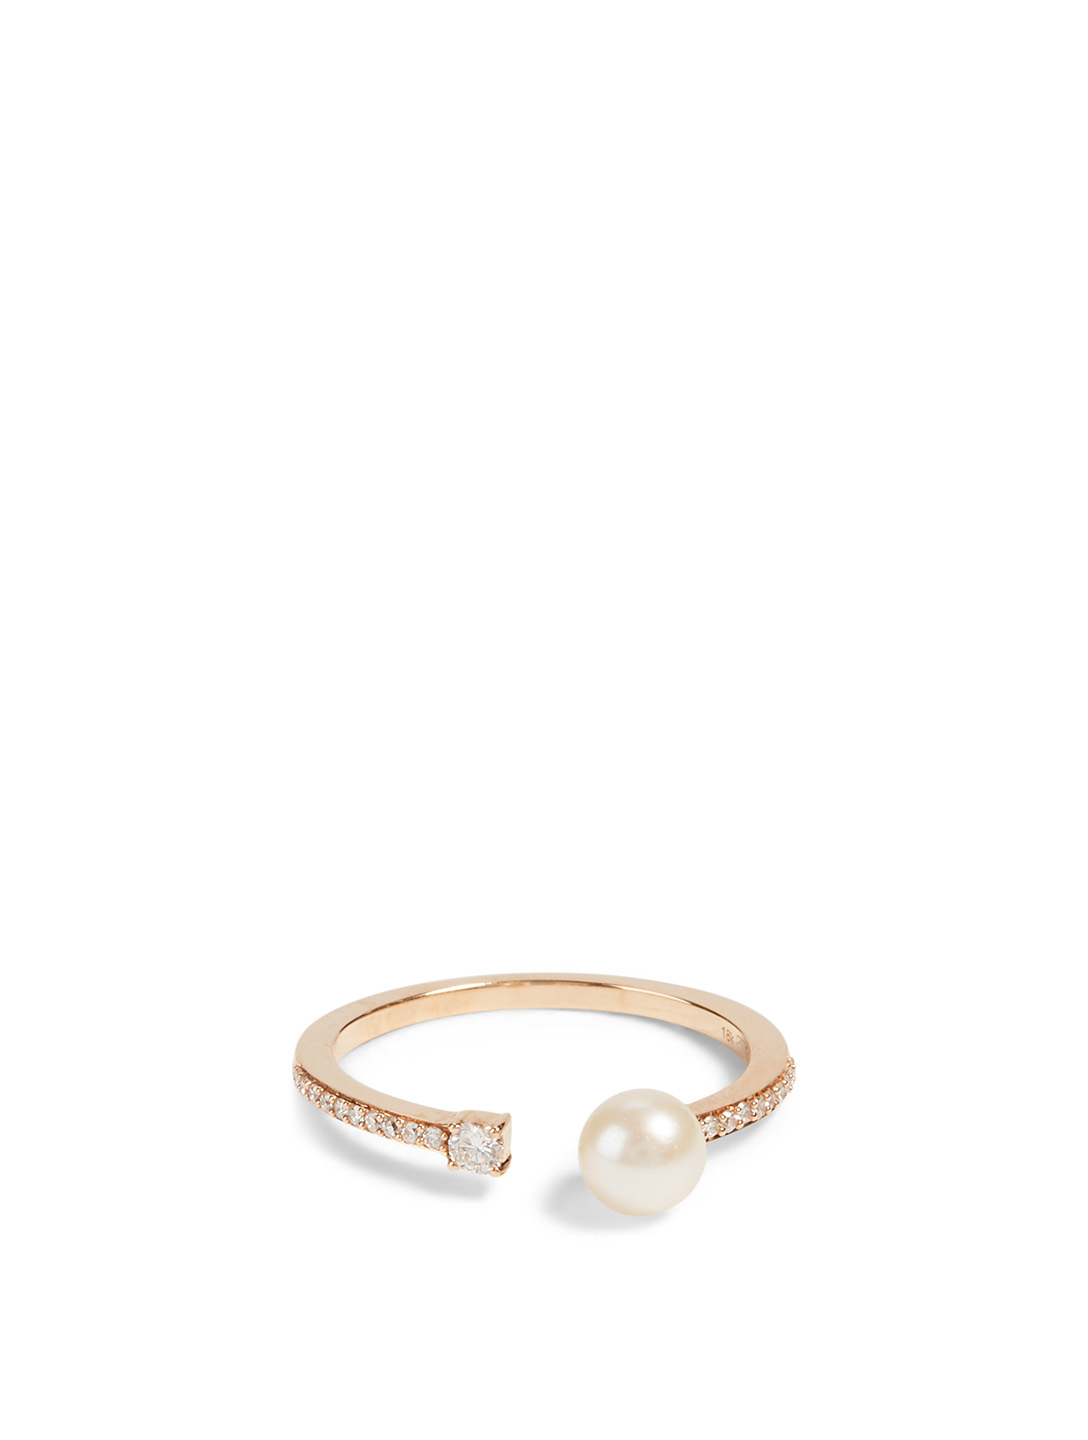 HUEB Spectrum 18K Rose Gold Ring With Diamonds And Pearl Women's Metallic